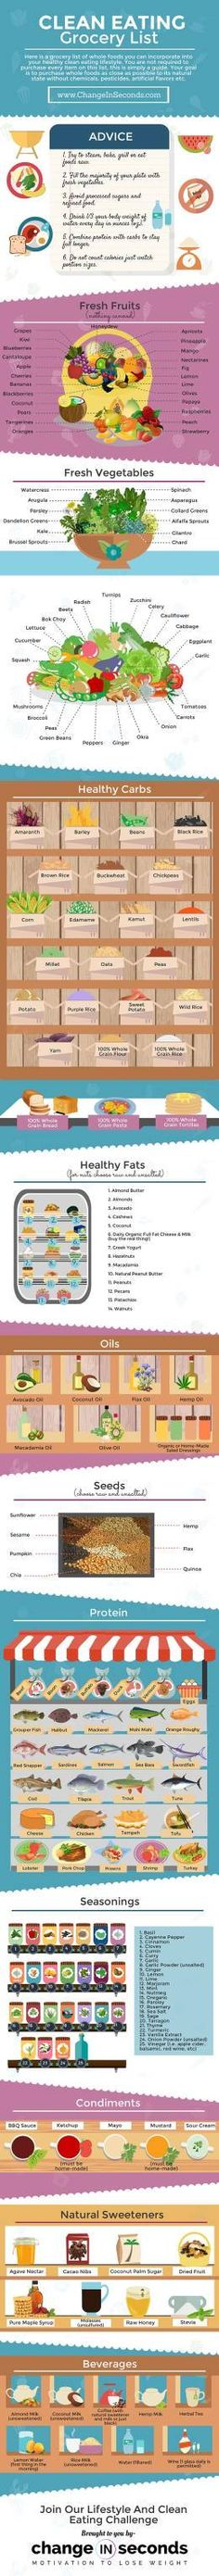 Clean Eating Grocery Shopping List Infographic #fromtrashtotrendz fromtrashtotrendz.com #FTTTapproved